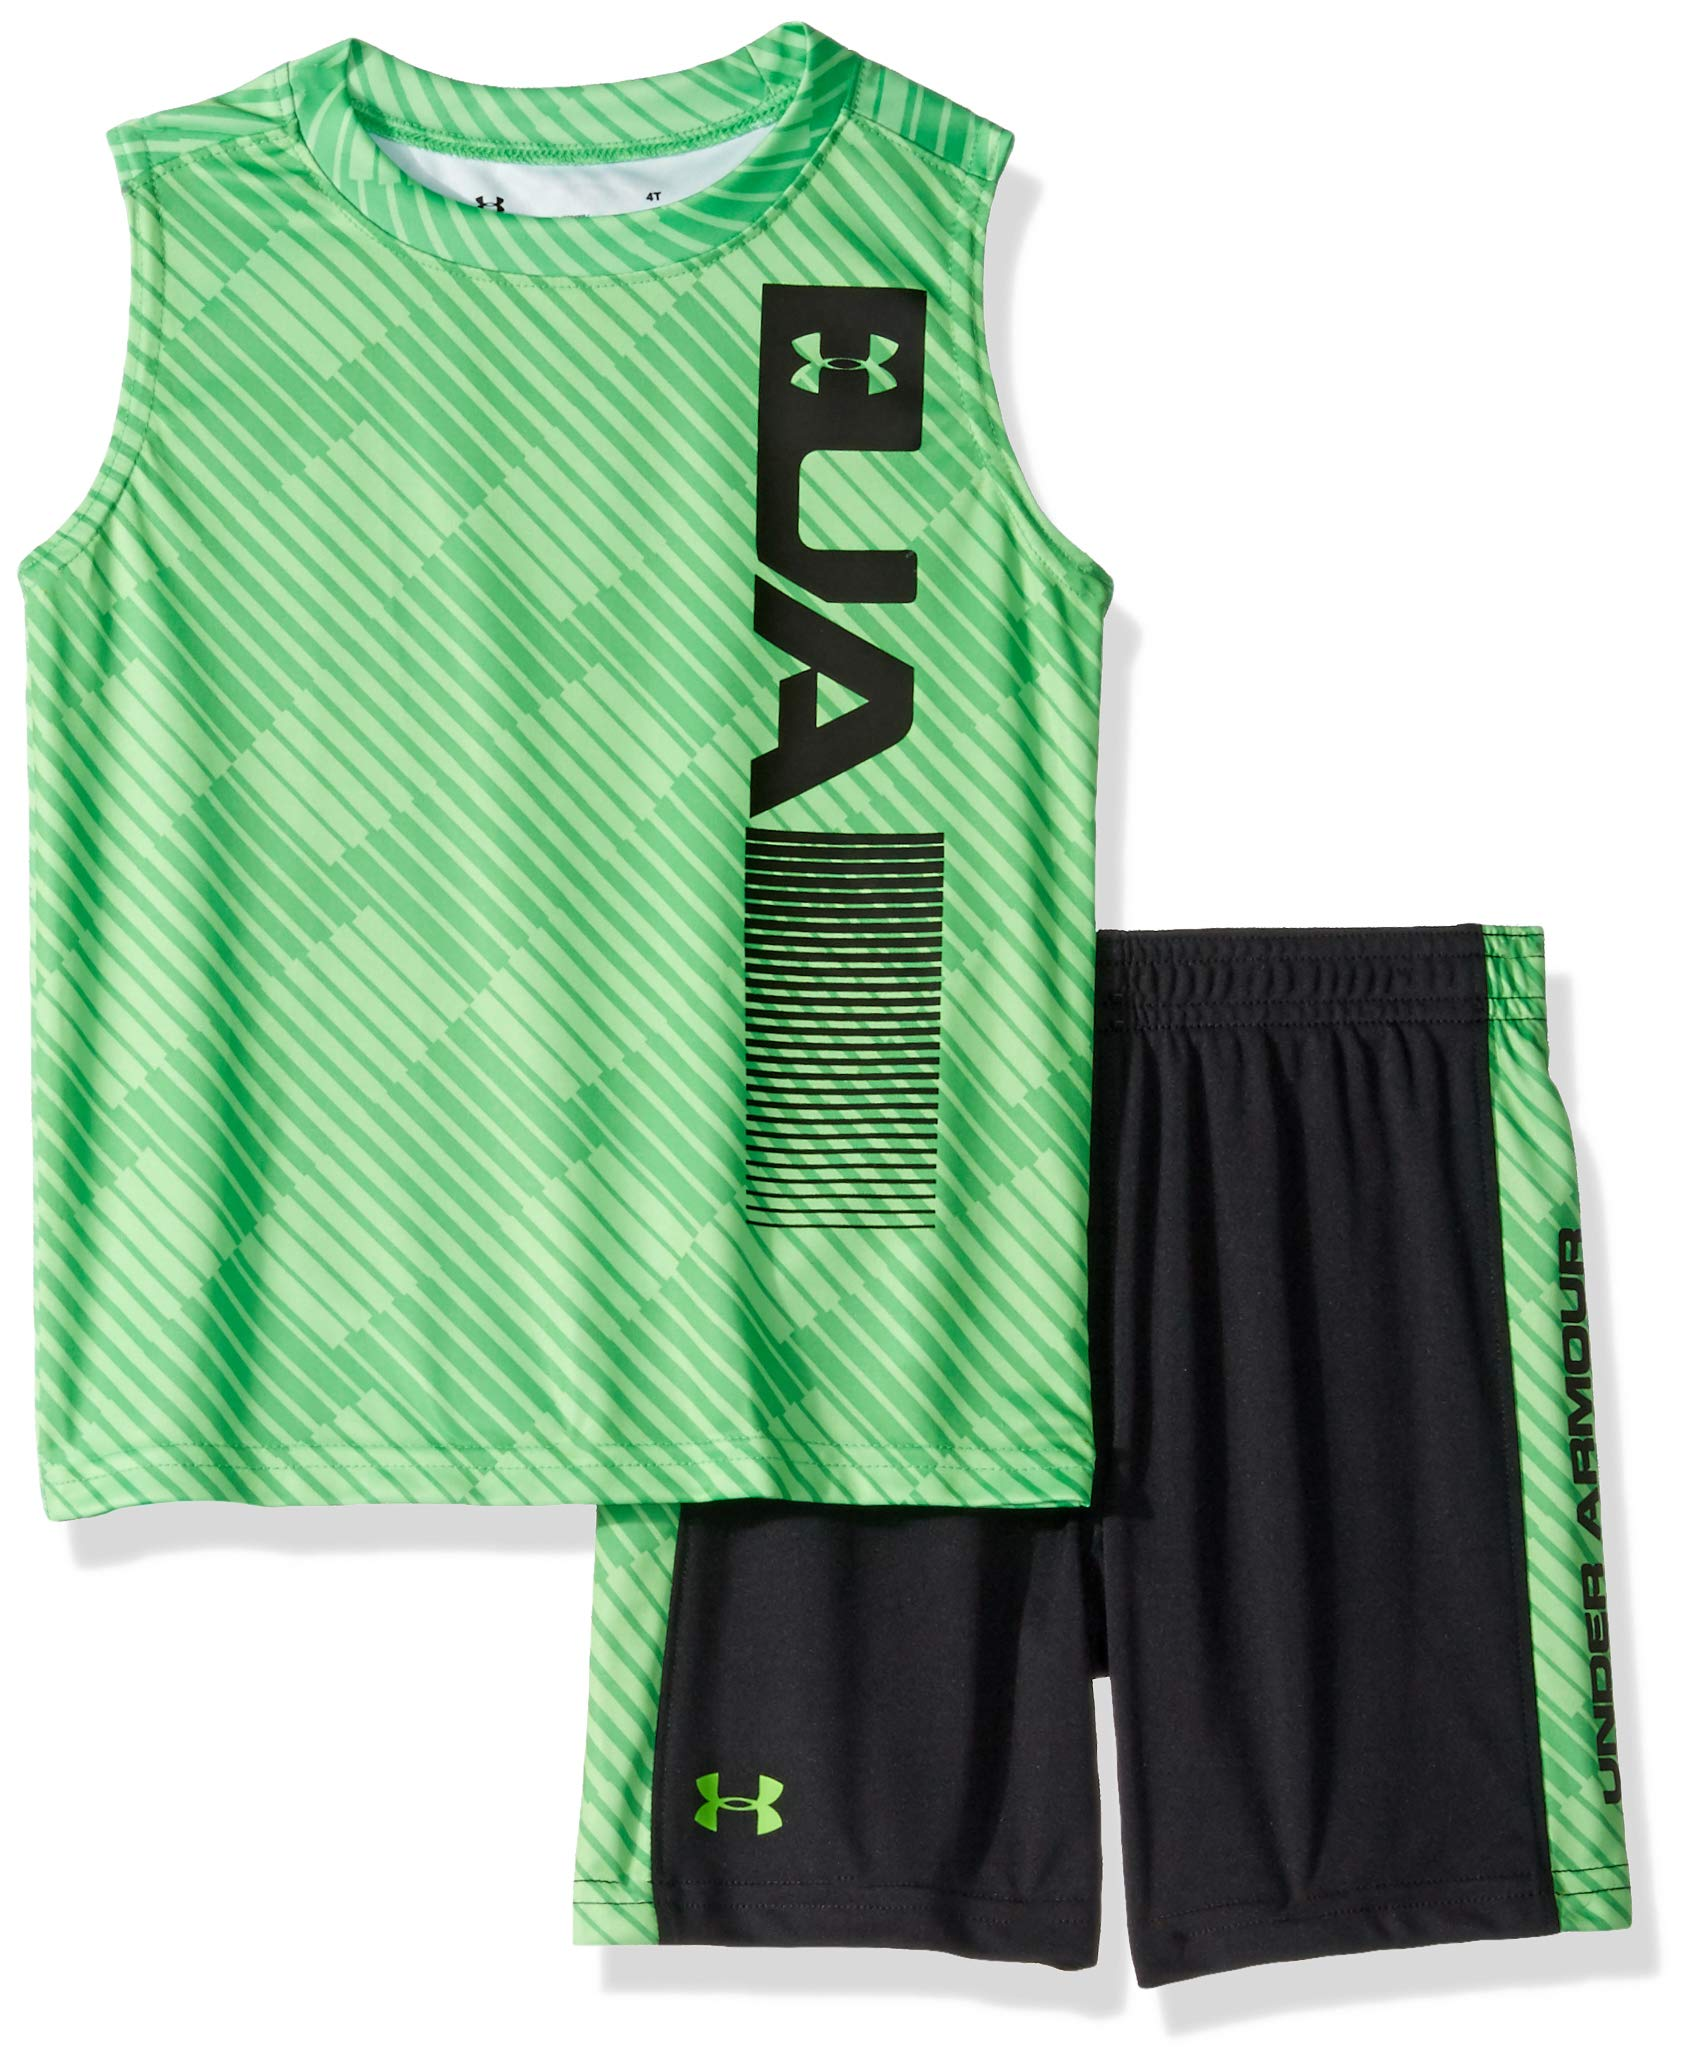 Under Armour Boys' Baby UA Muscle Tank and Short Set, Zap Green-S19, 12M